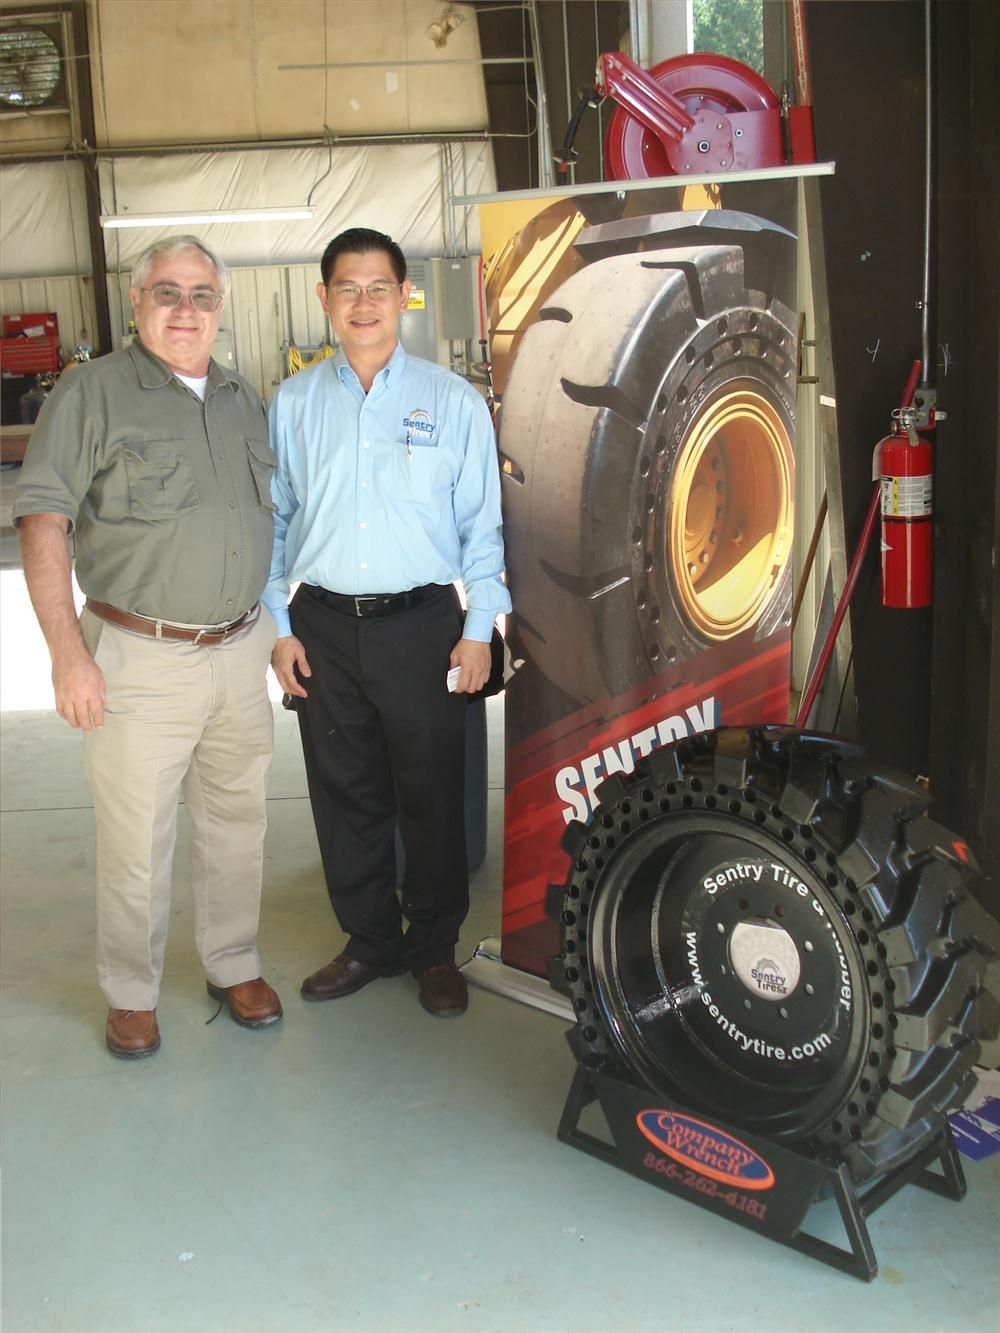 Ken Emmett (L) of Terex talks with Daven Tan of Sentry Tires about the performance and reliability of his products.